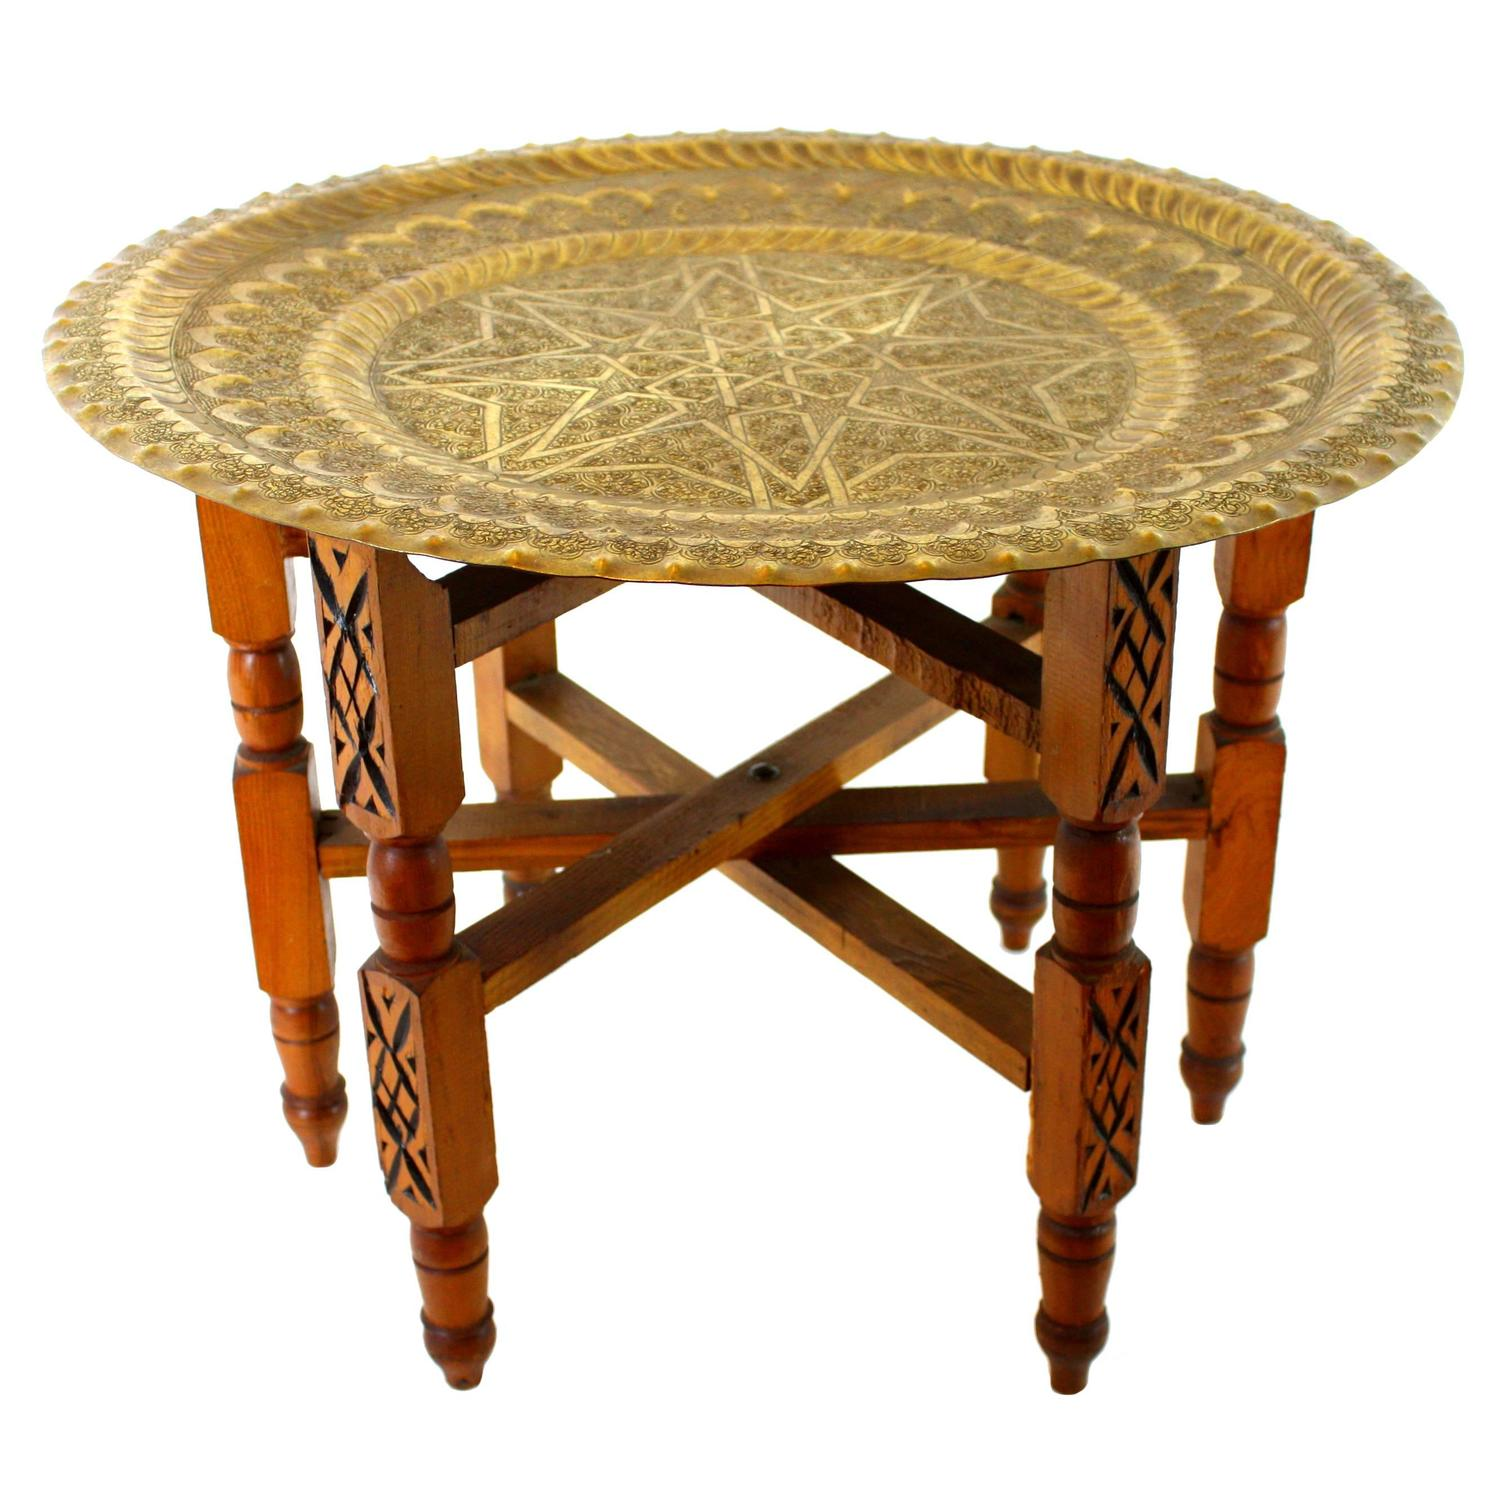 Traditional Moroccan Brass And Wood Tray Table For Sale At 1stdibs